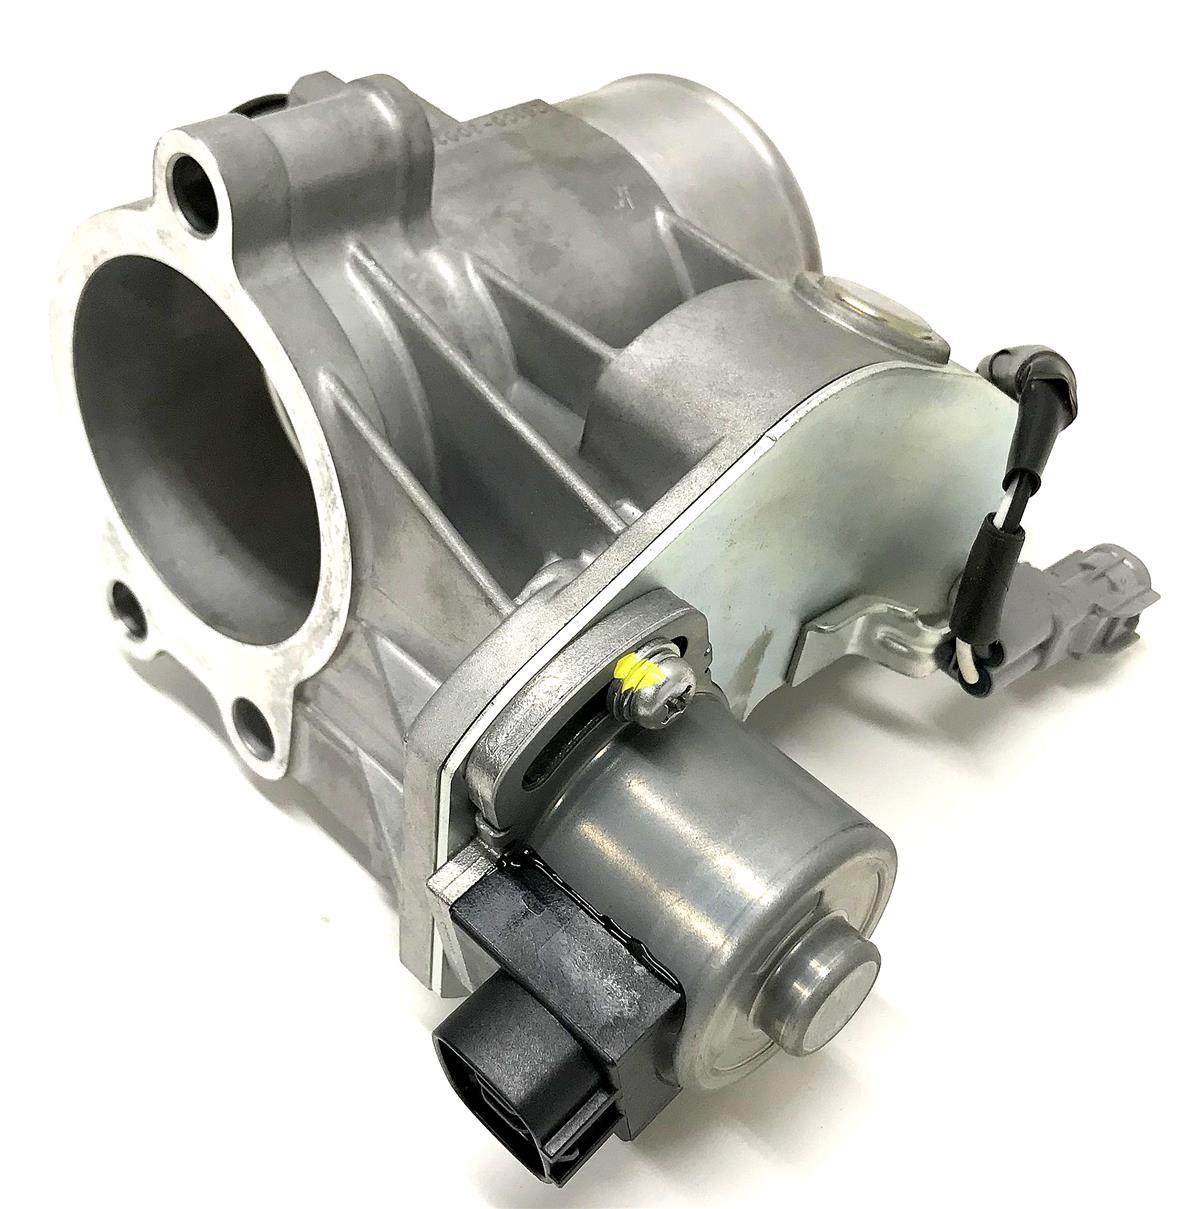 SP-1320 | SP-1320  Throttle Body Assembly Toyota (1).jpeg